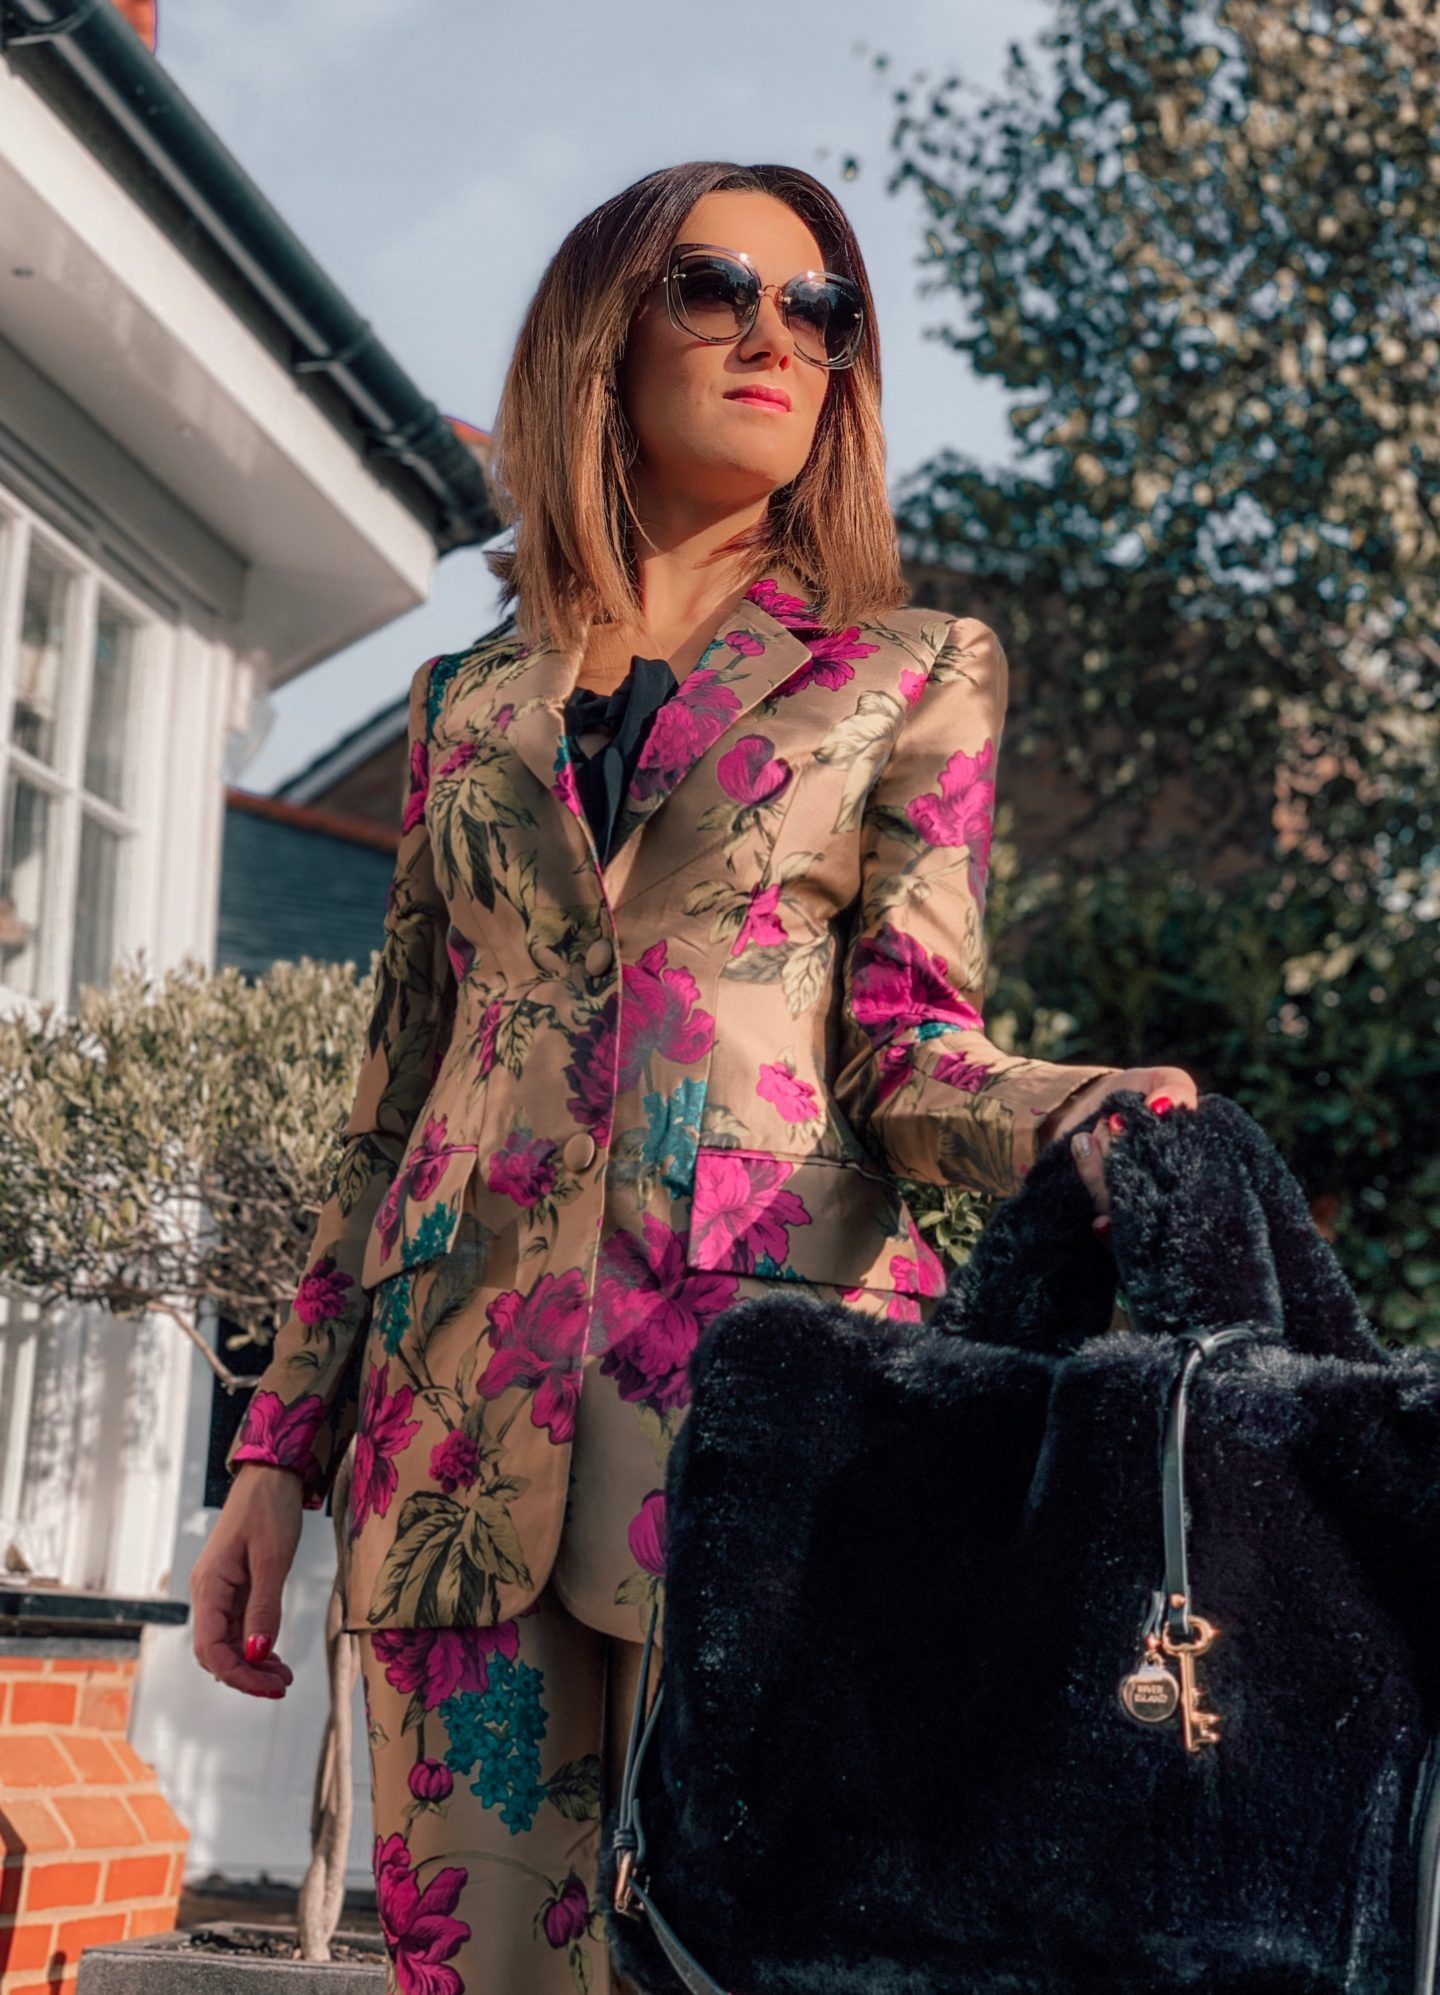 ASOS EDITION floral jacquard blazer | ASOS EDITION floral jacquard trouser | Ted Baker Mesh Insert Court Shoes | River Island oversized fur bag Miu Miu sunglasses